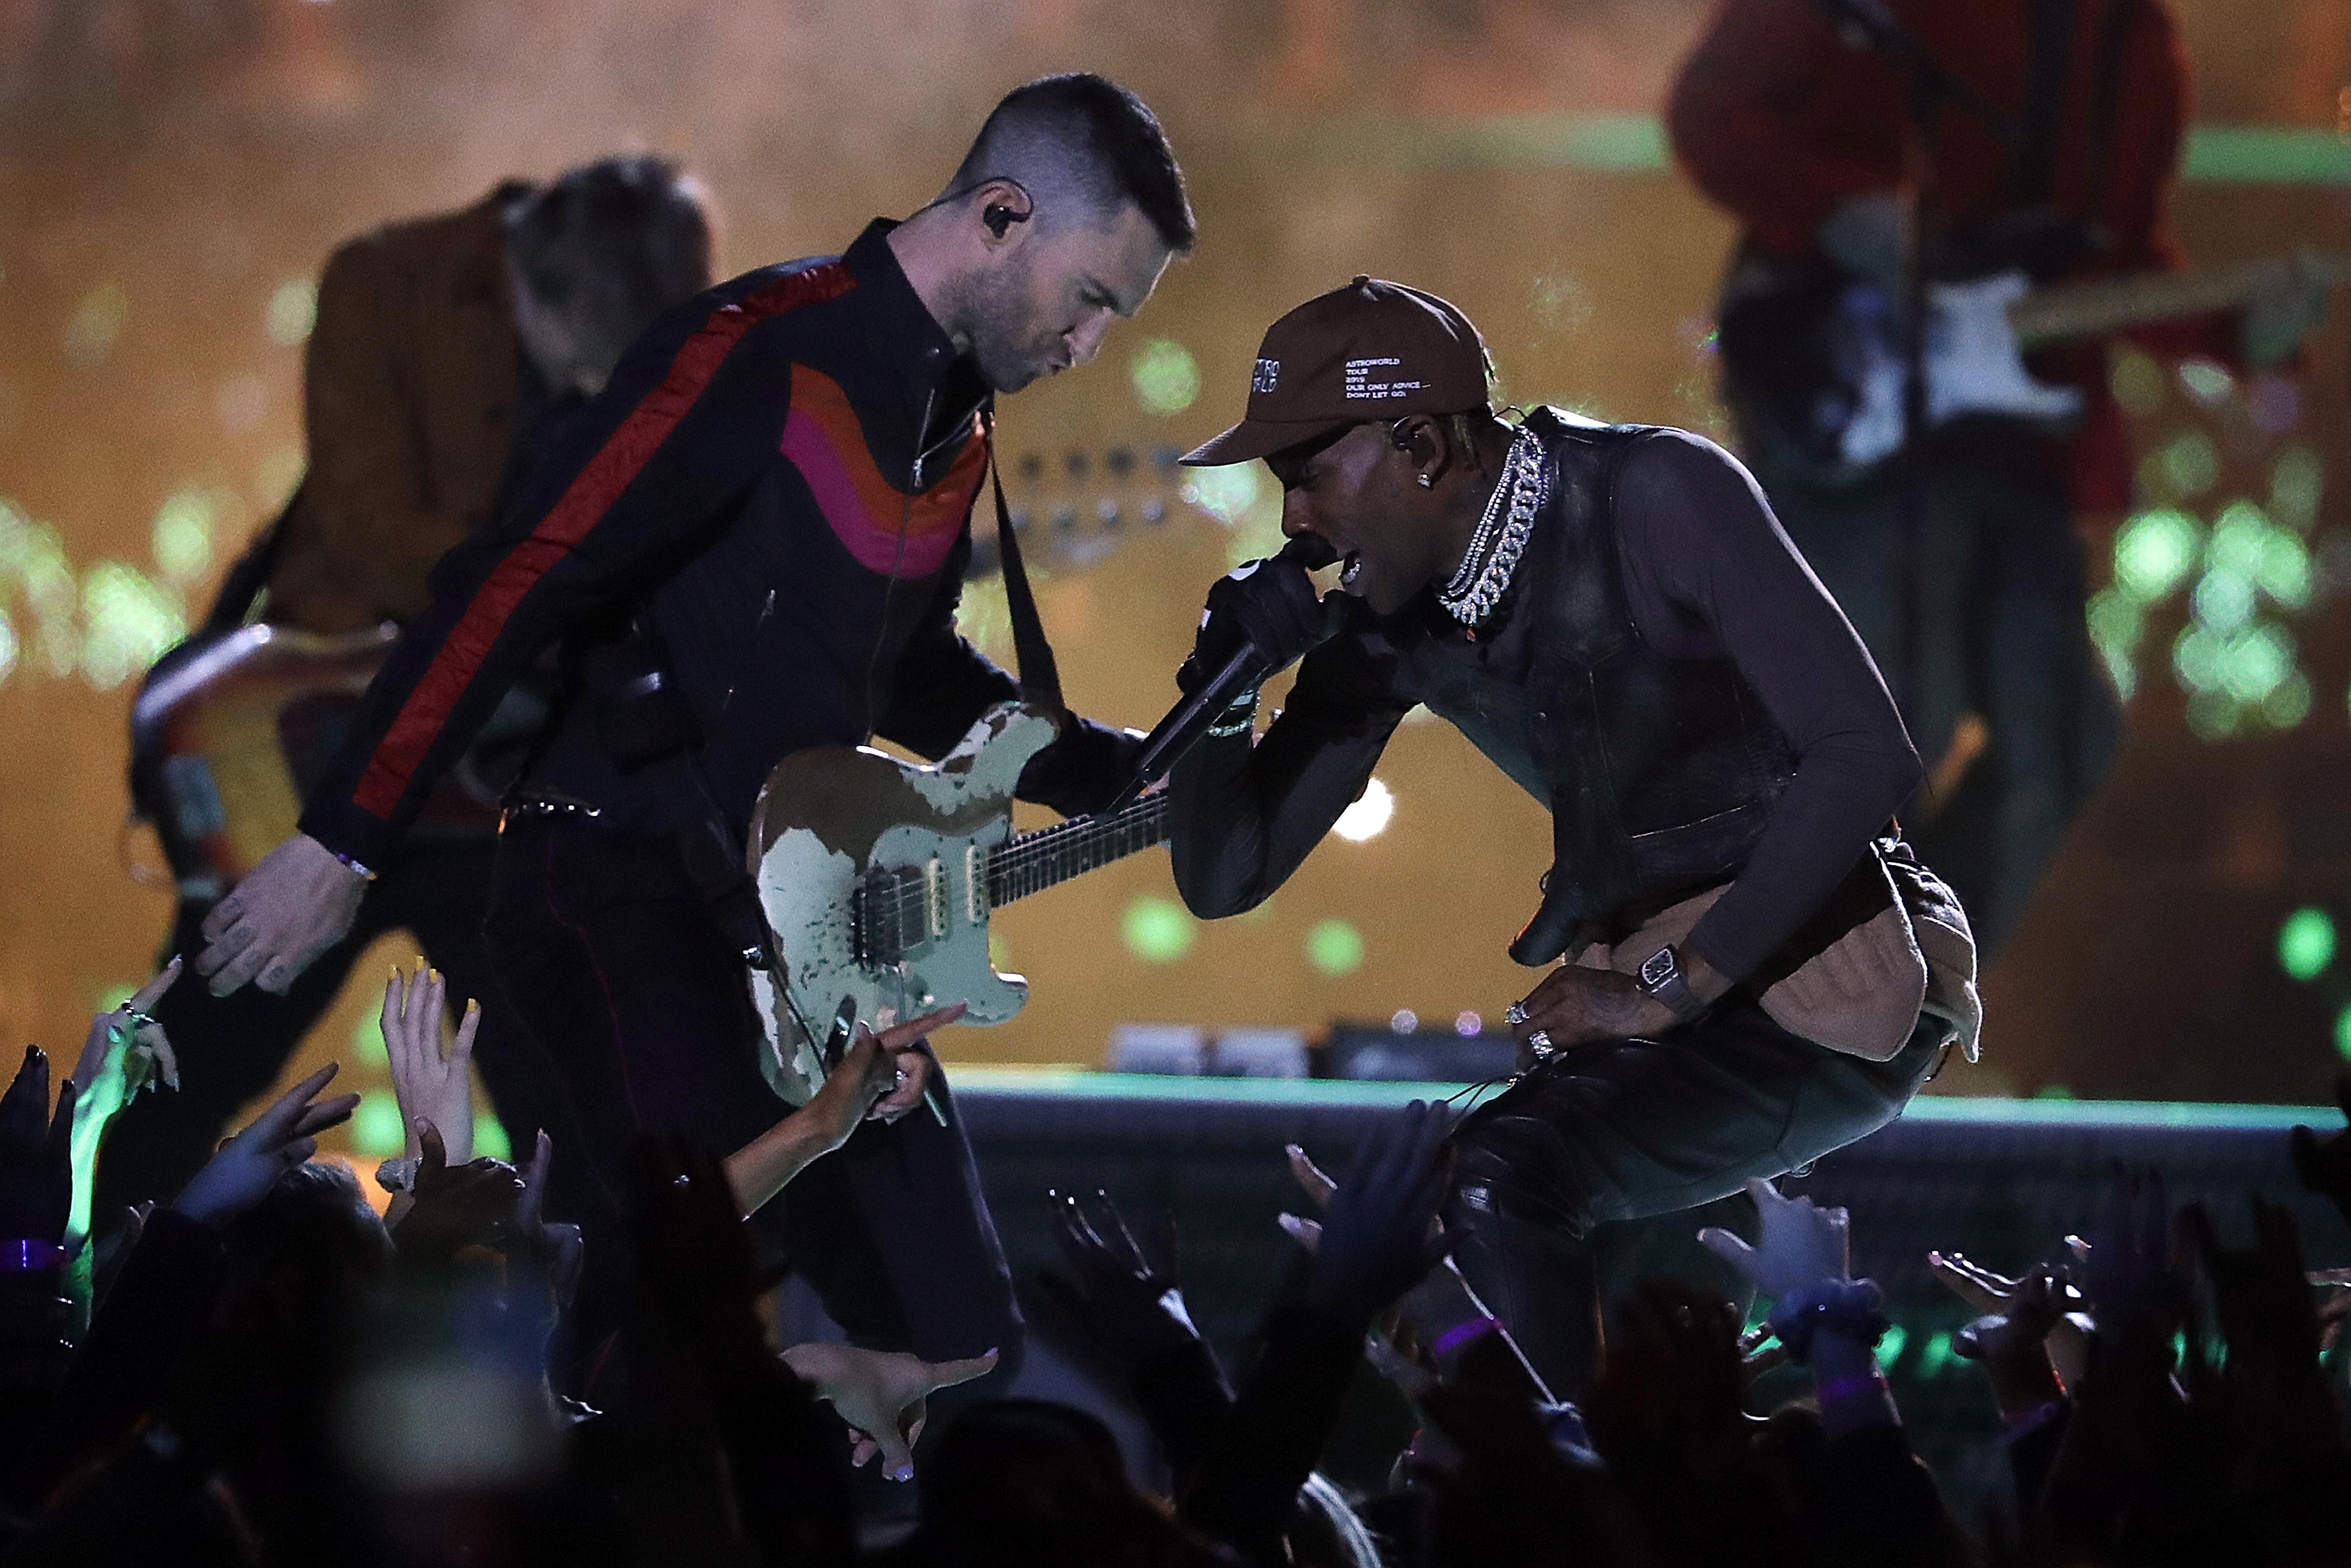 "<div class=""meta image-caption""><div class=""origin-logo origin-image ap""><span>AP</span></div><span class=""caption-text"">Adam Levine of Maroon 5, left, and Travis Scott perform during halftime of the NFL Super Bowl 53 football game between the Los Angeles Rams and the New England Patriots. (AP Photo/Jeff Roberson)</span></div>"